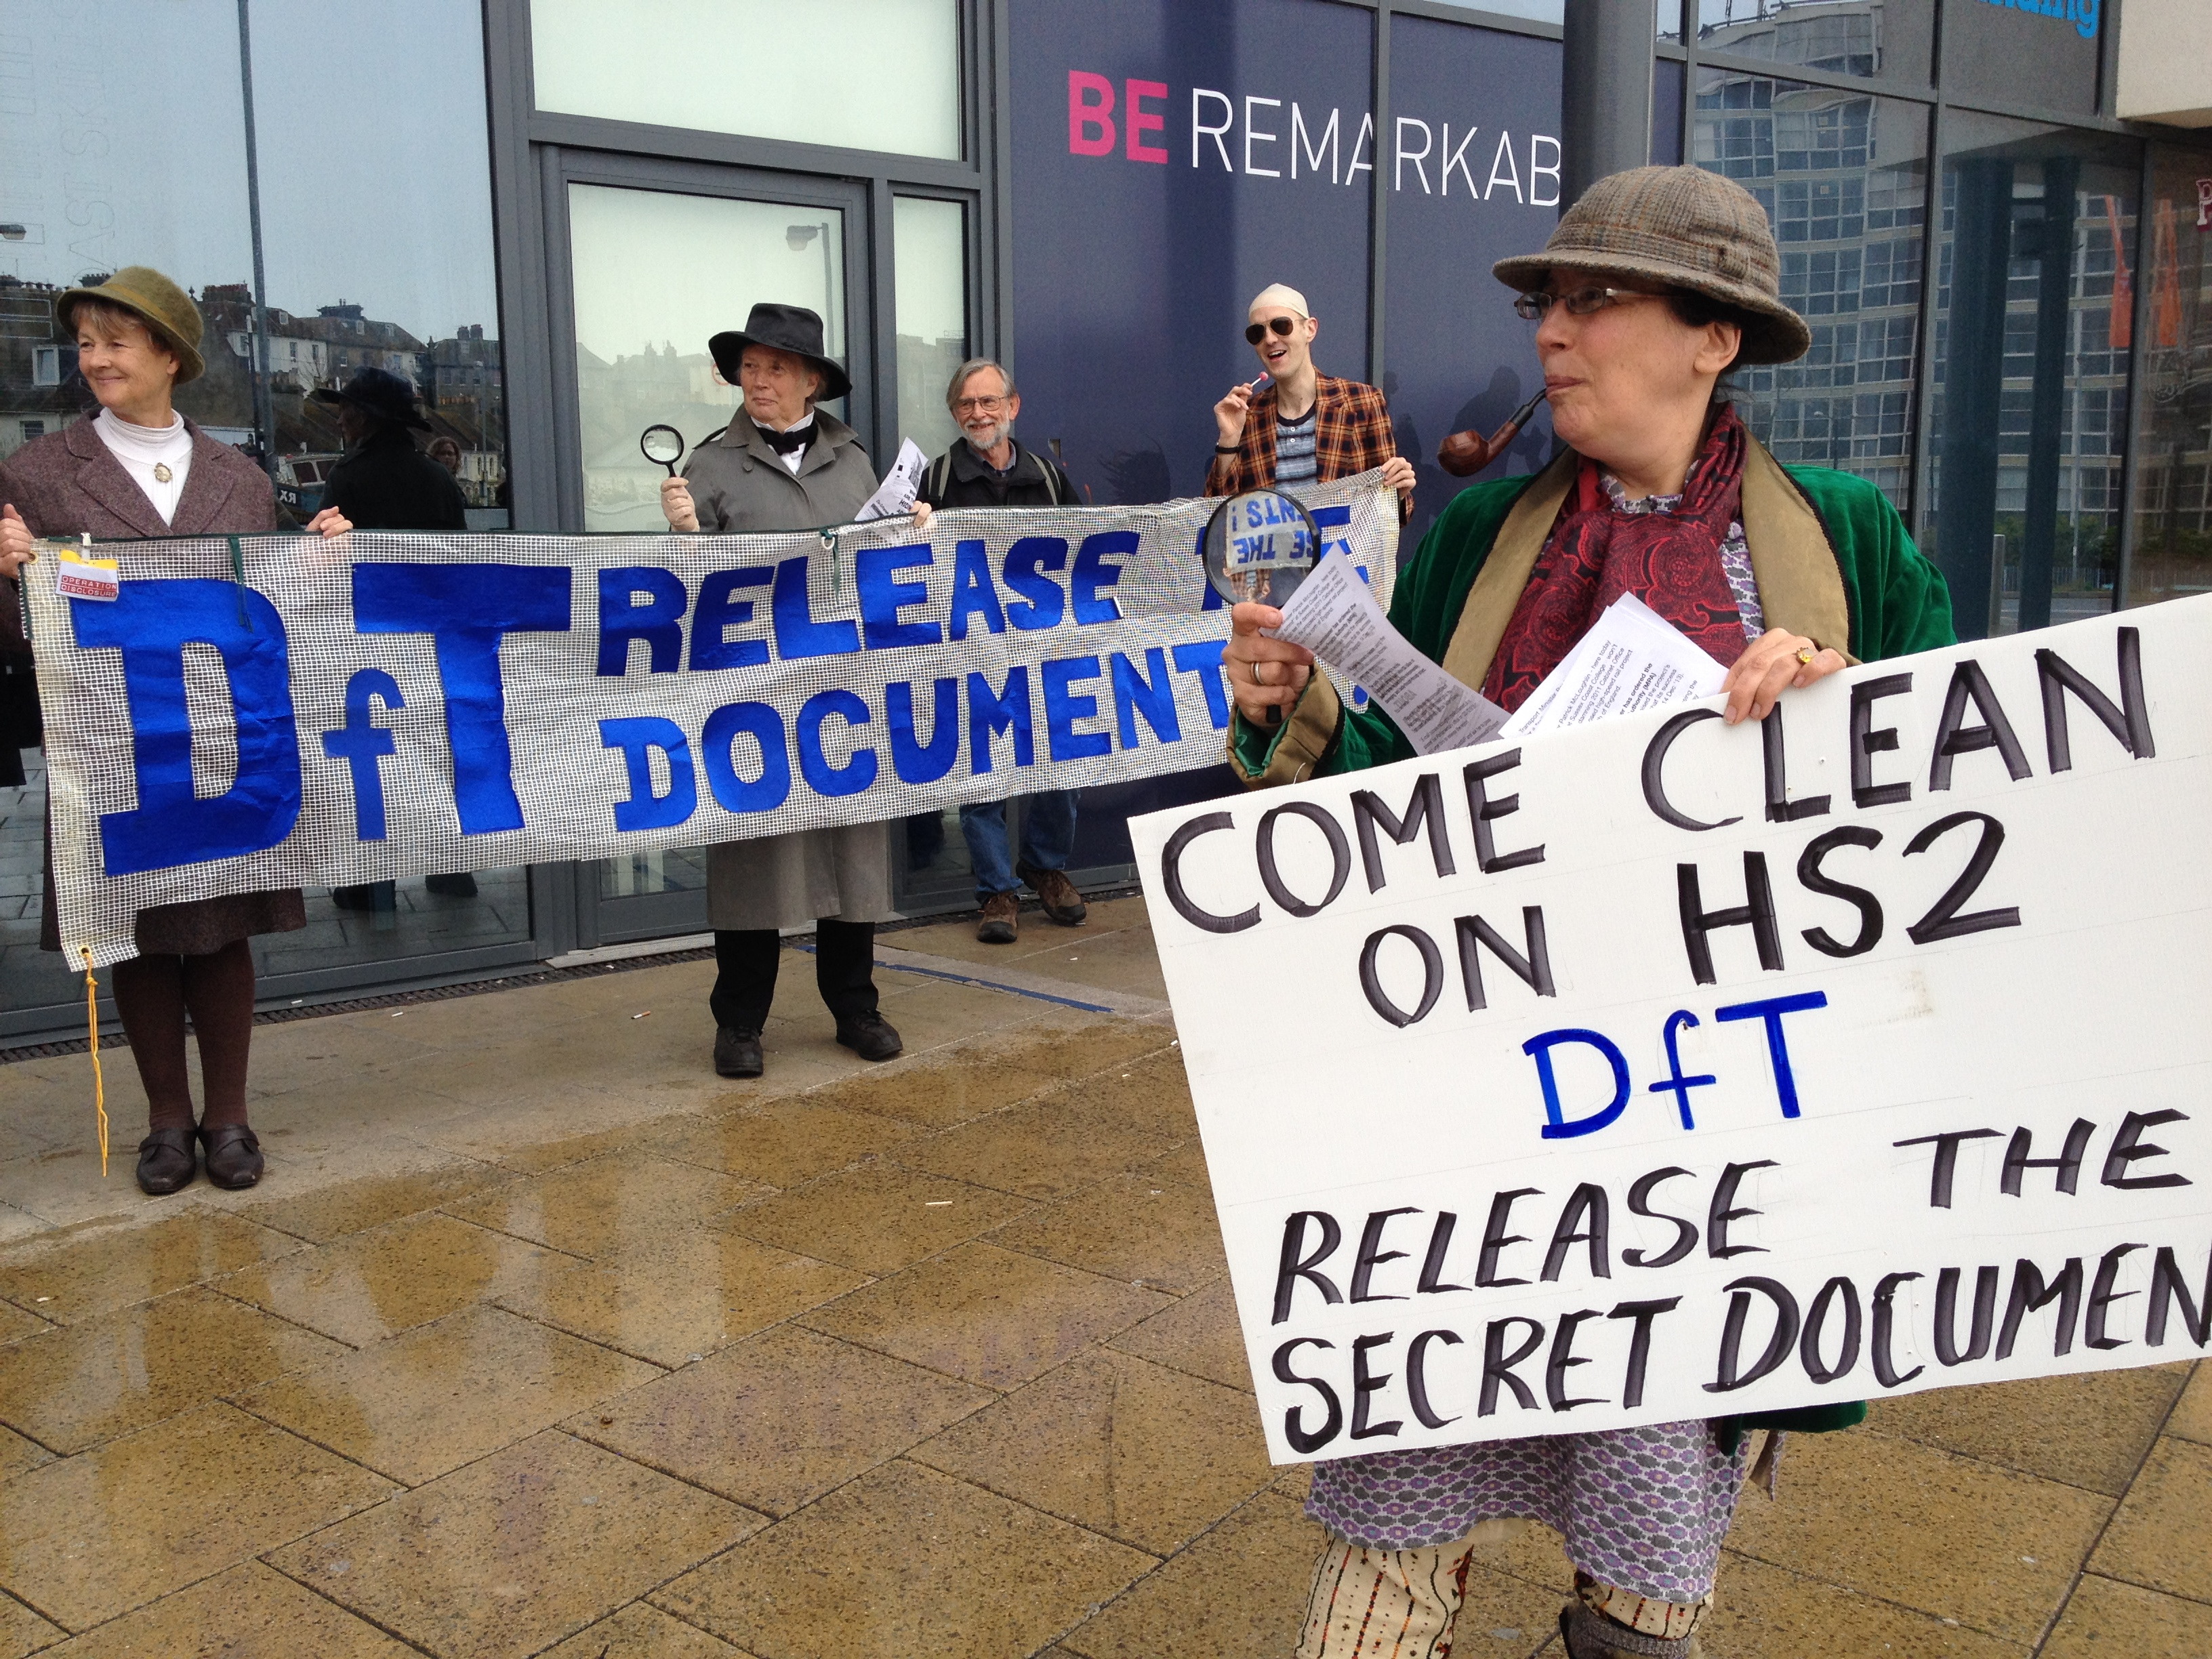 A collection of the worlds greatest detectives couldn't get to the bottom of where those secret HS2 documents are. Photo: Coombe Haven Defenders